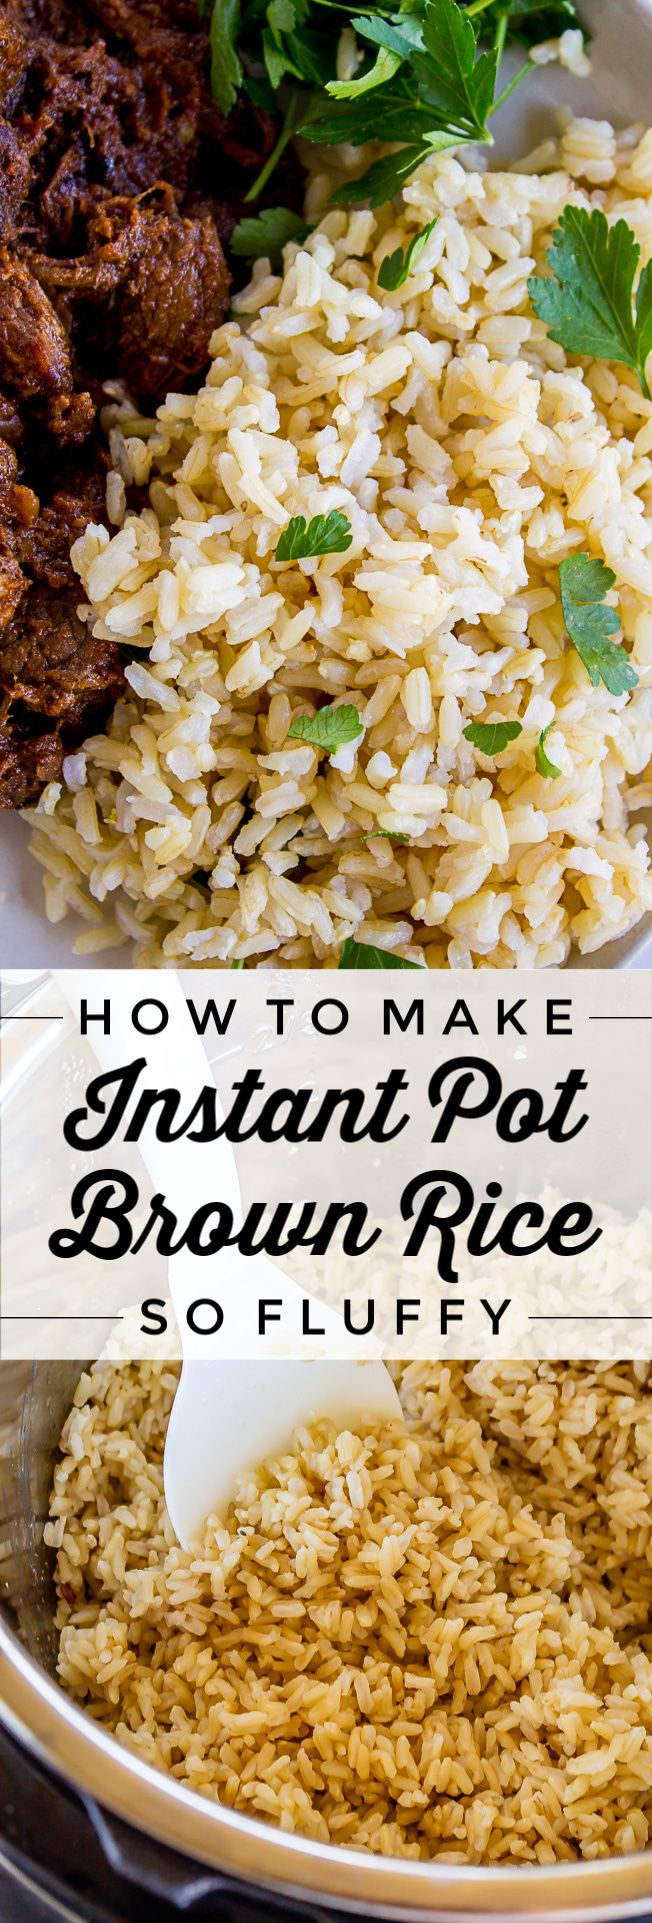 How to Make Instant Pot Brown Rice from The Food Charlatan